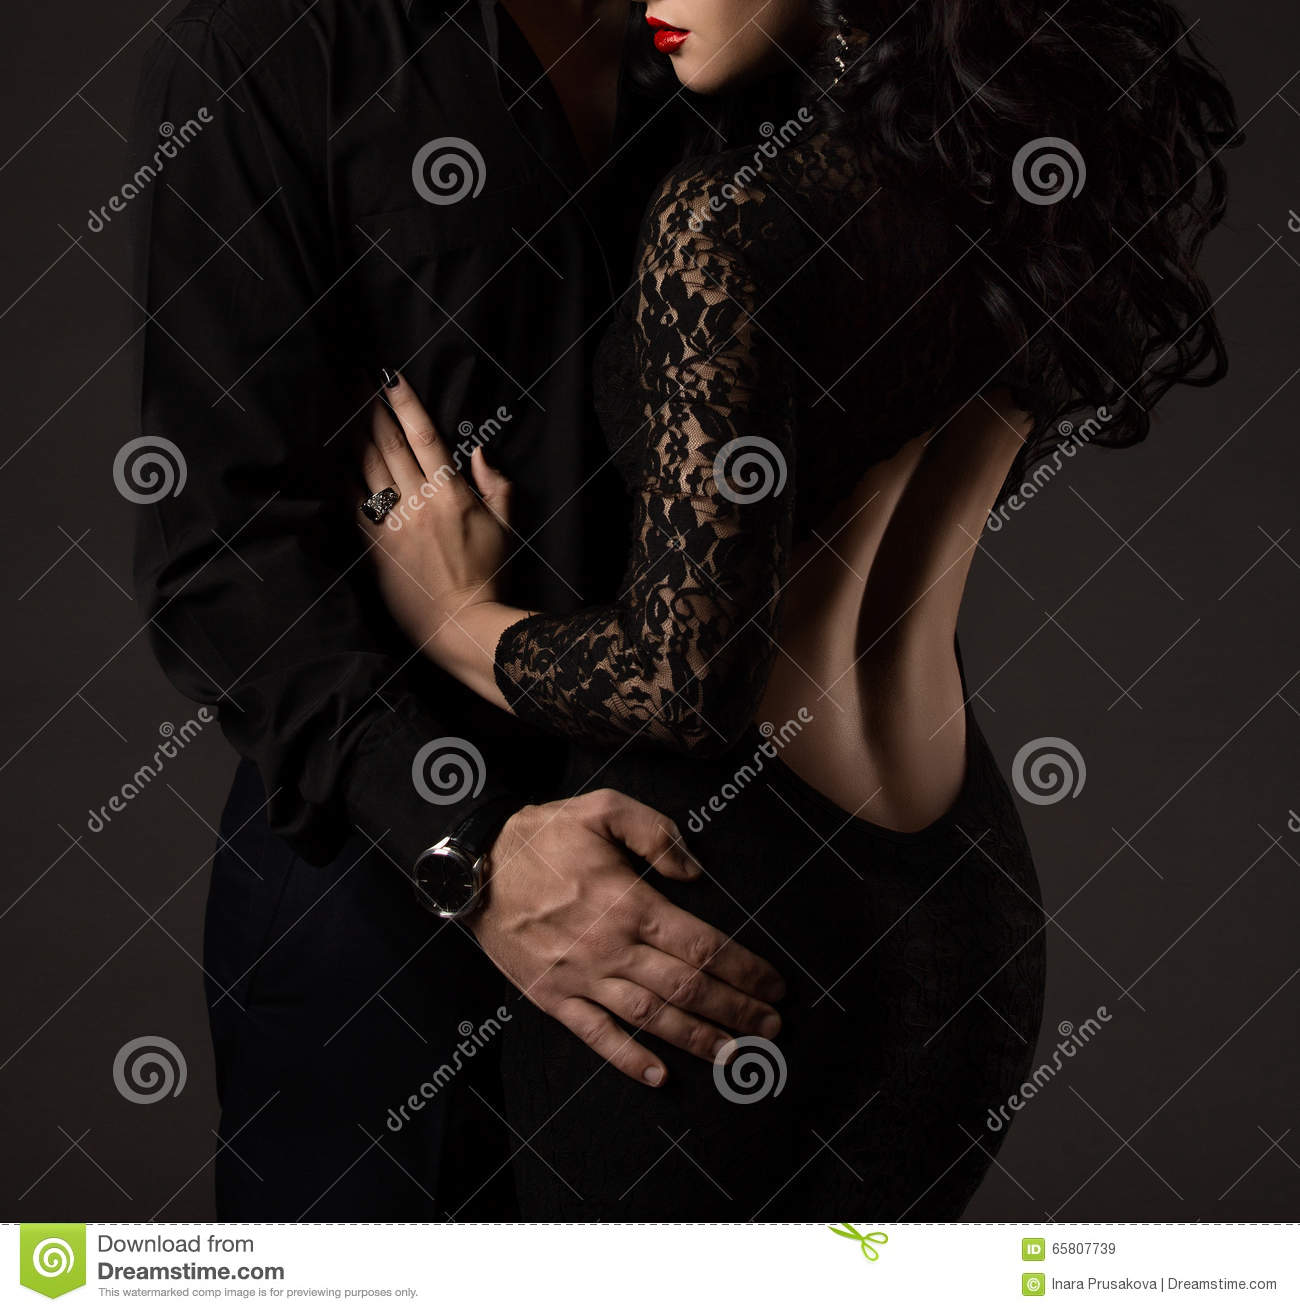 Couple in Black, Woman Man no Faces, Lady Lace Dress